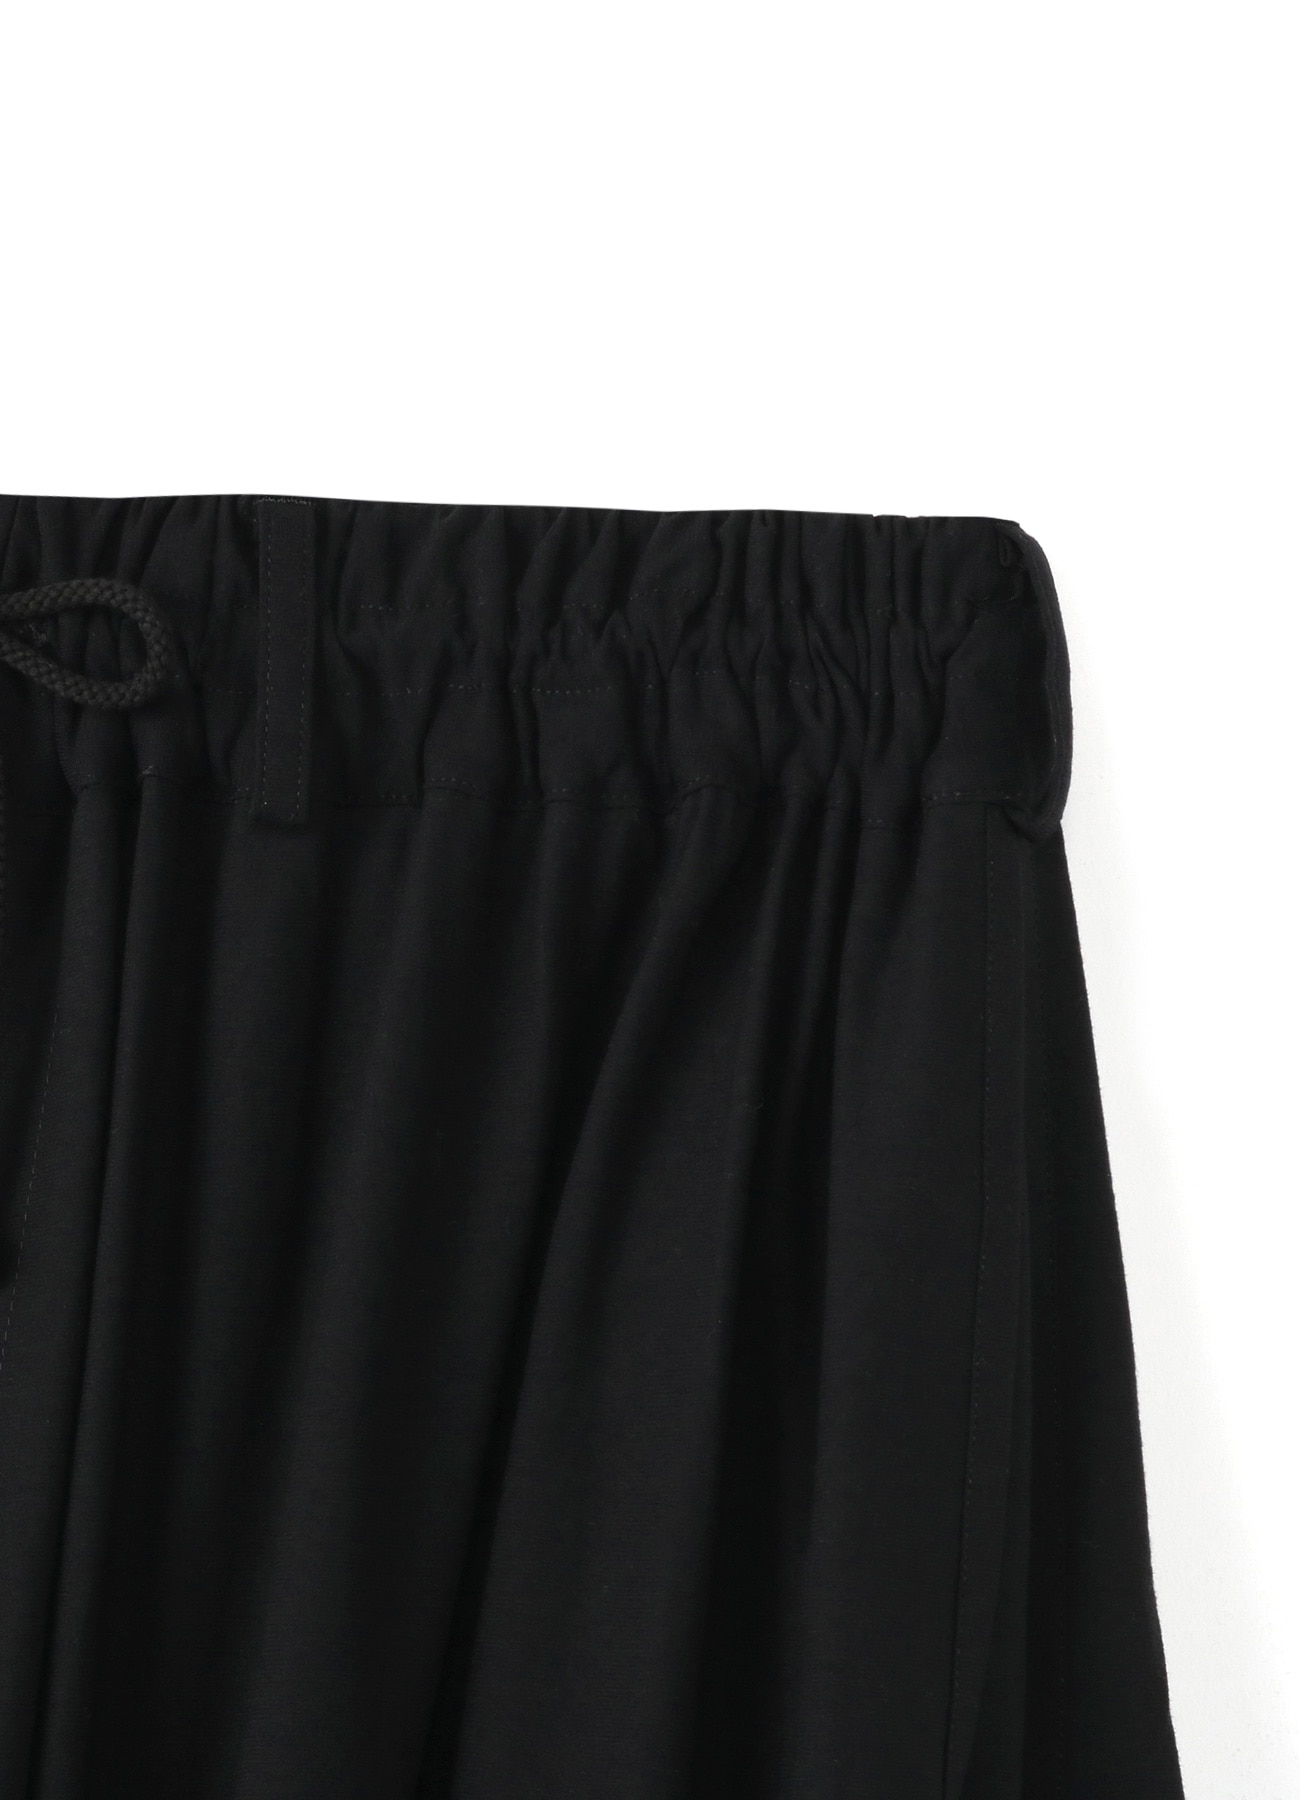 ​ ​Strongly twisted tearwear  boxed pleat pants